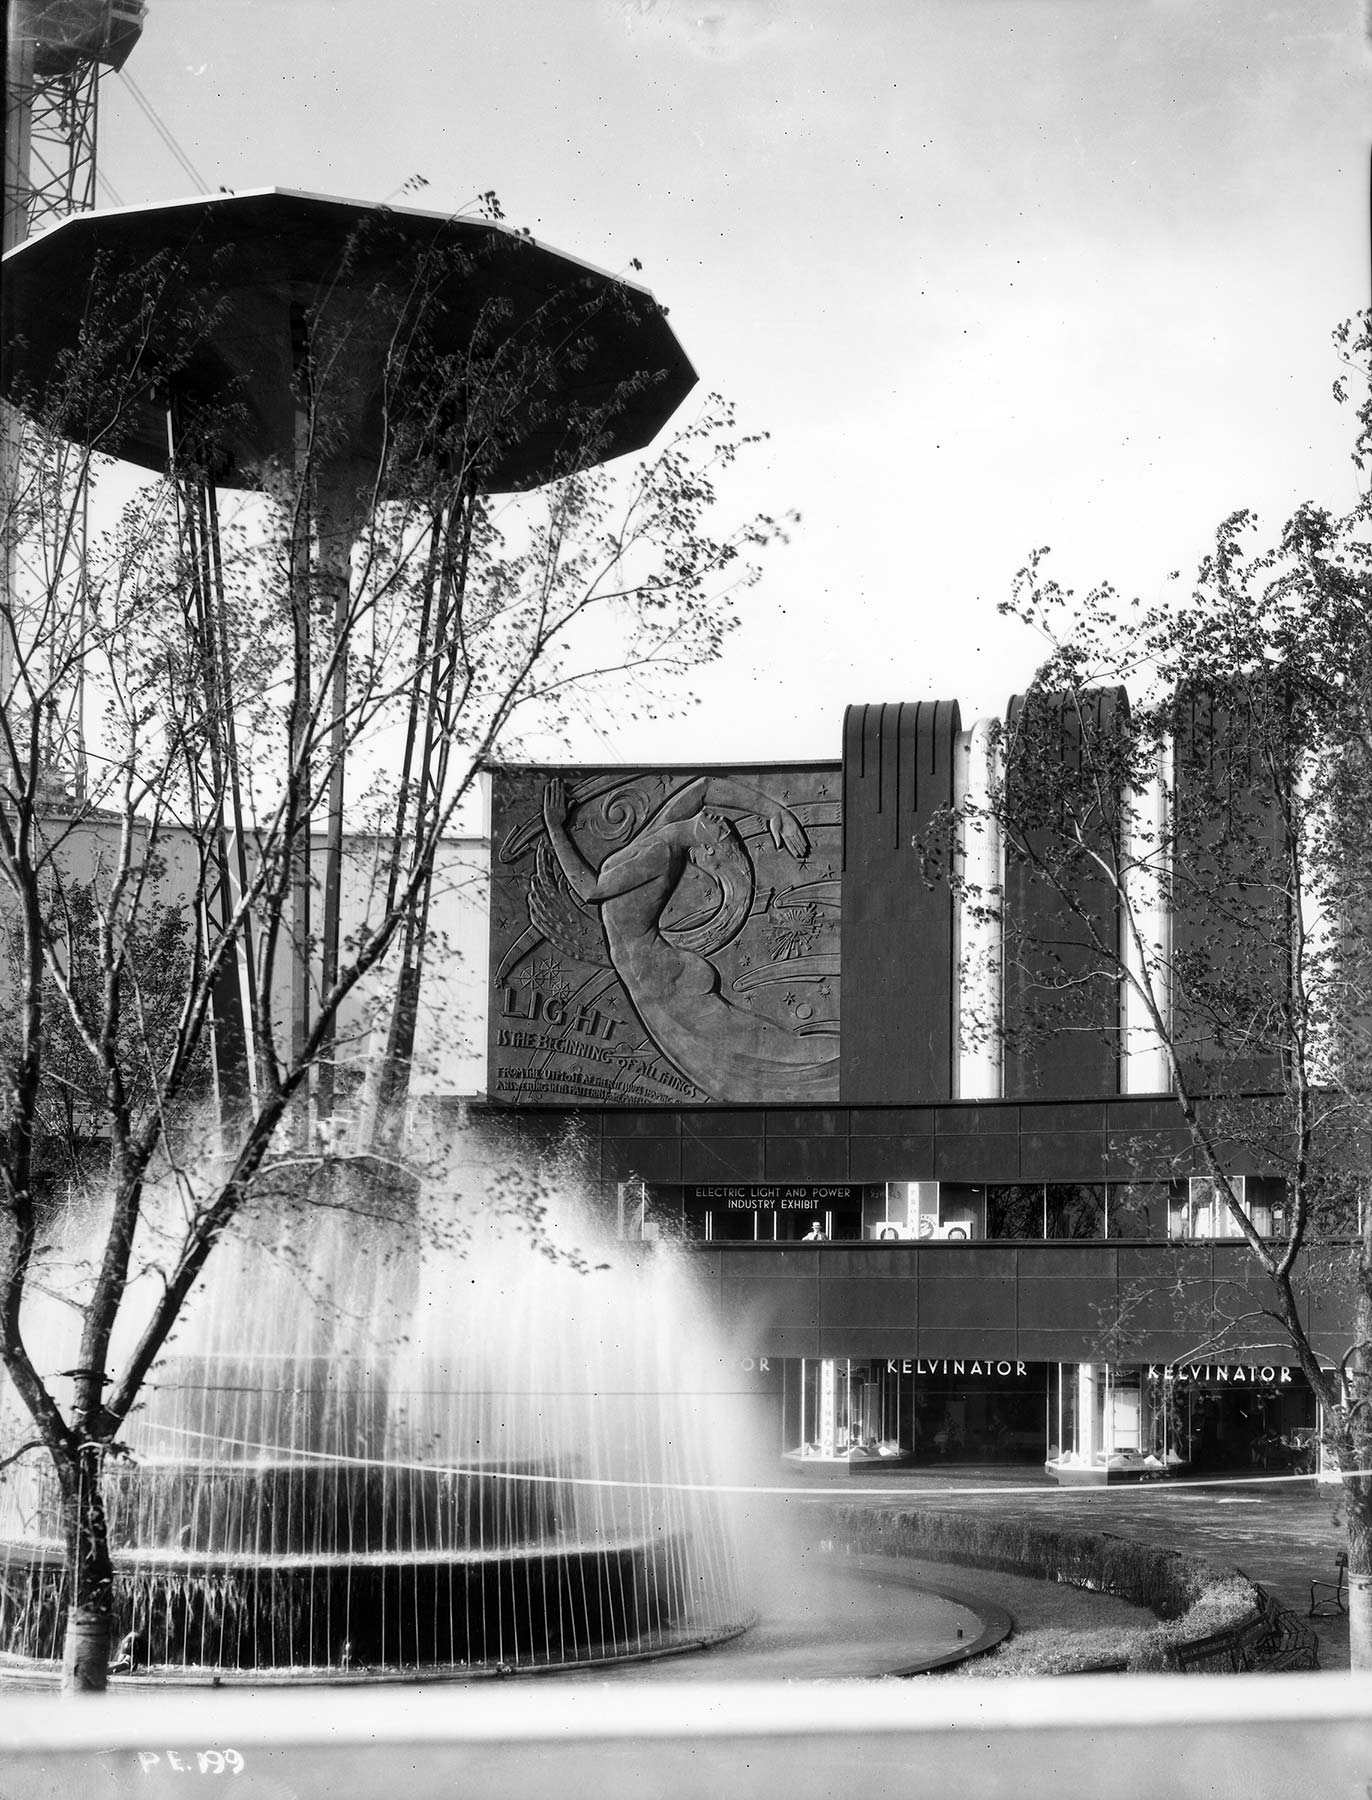 Morning glory fountain in the Electrical Court. Chicago Park District Records: Photographs, Special Collections, Chicago Public Library.